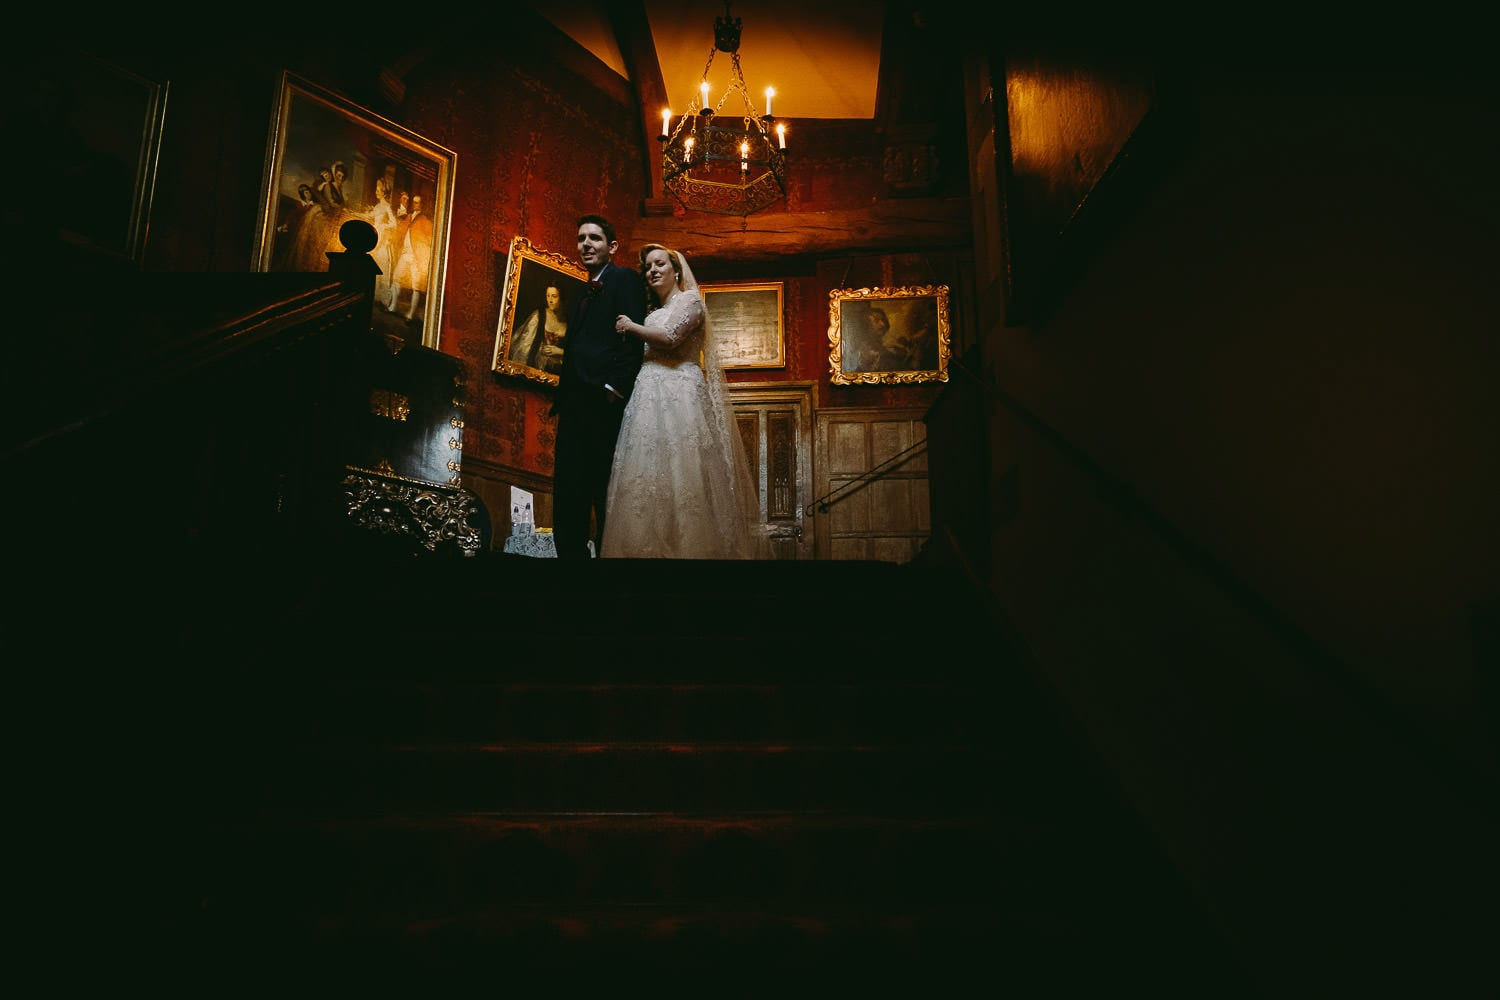 The bride and groom at the top of the stairs